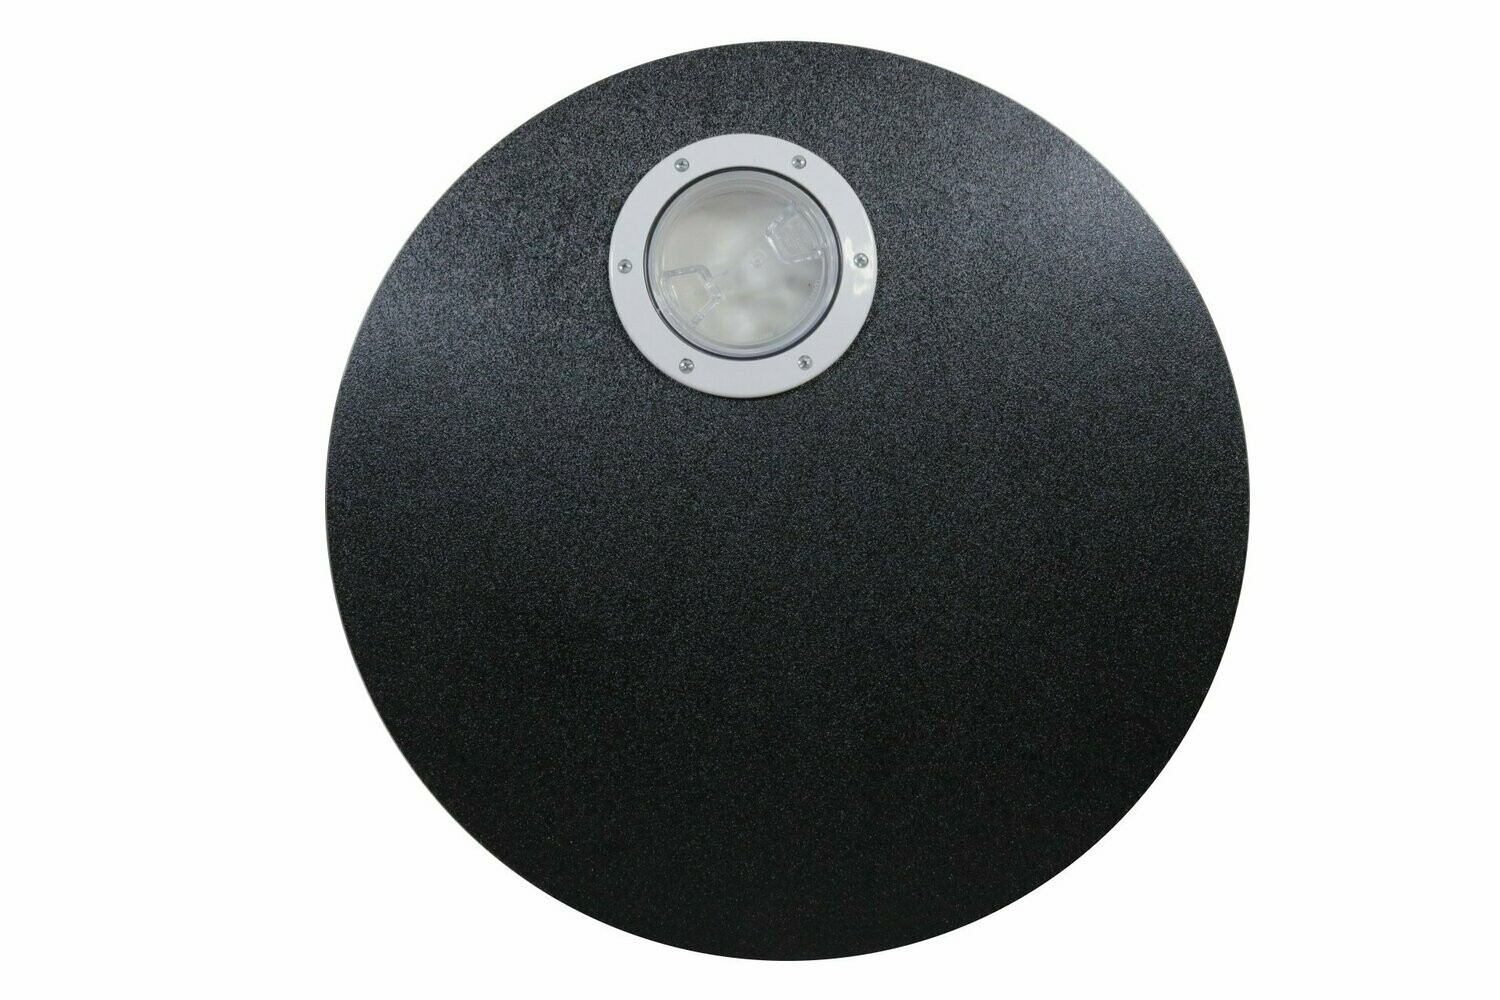 ABS Dome with Inspection Port